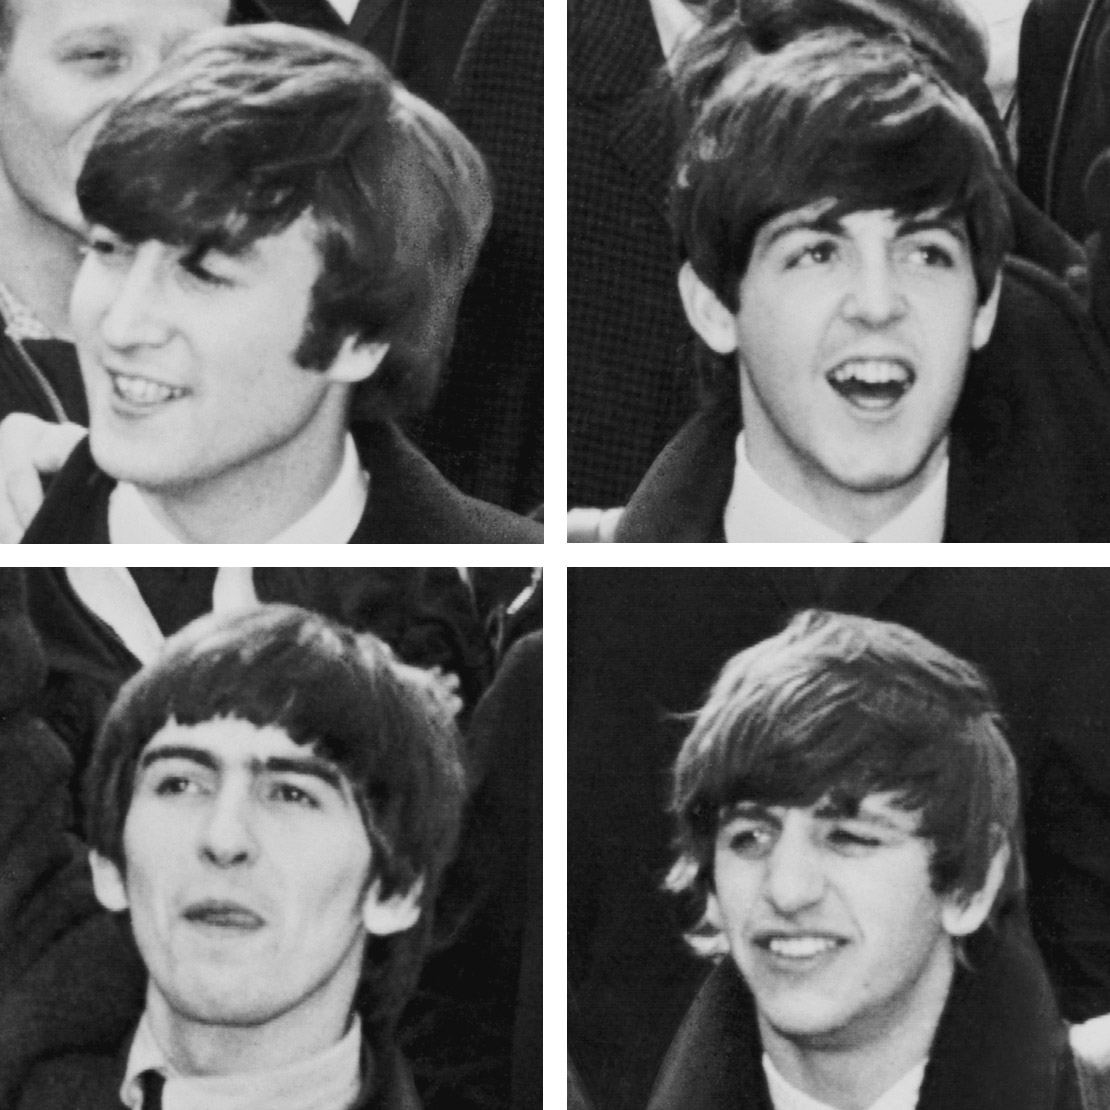 photo of The Beatles as they appeard in 1964.